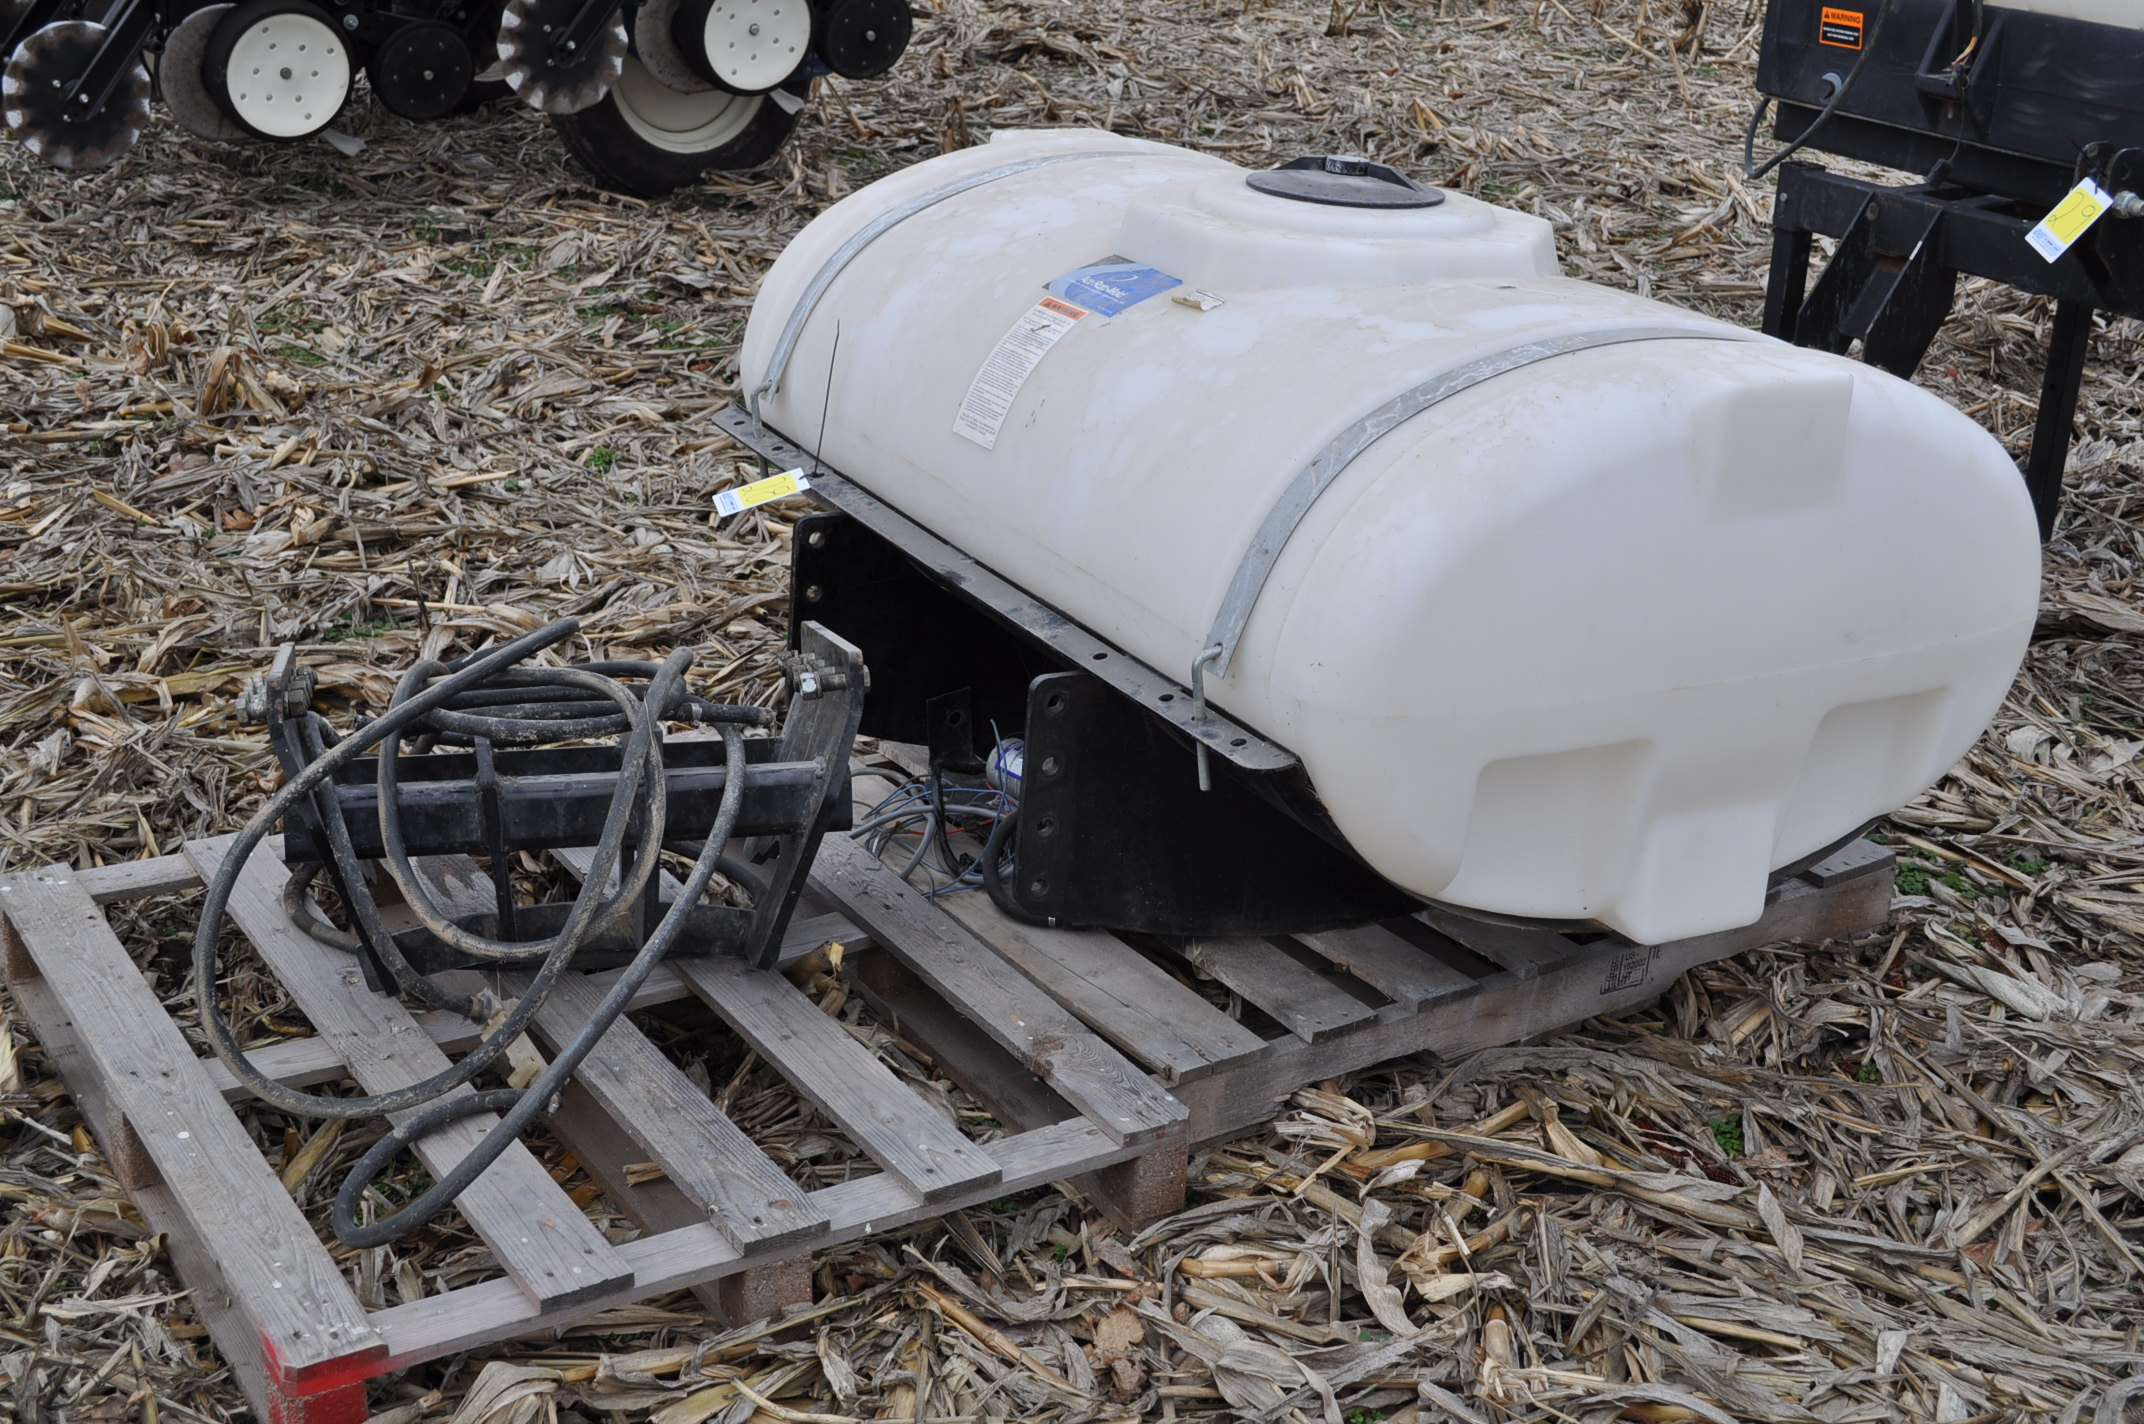 200 gallon front mount tankfor New Holland T7 tractor, poly tank, brackets for SuperSteer or - Image 2 of 7